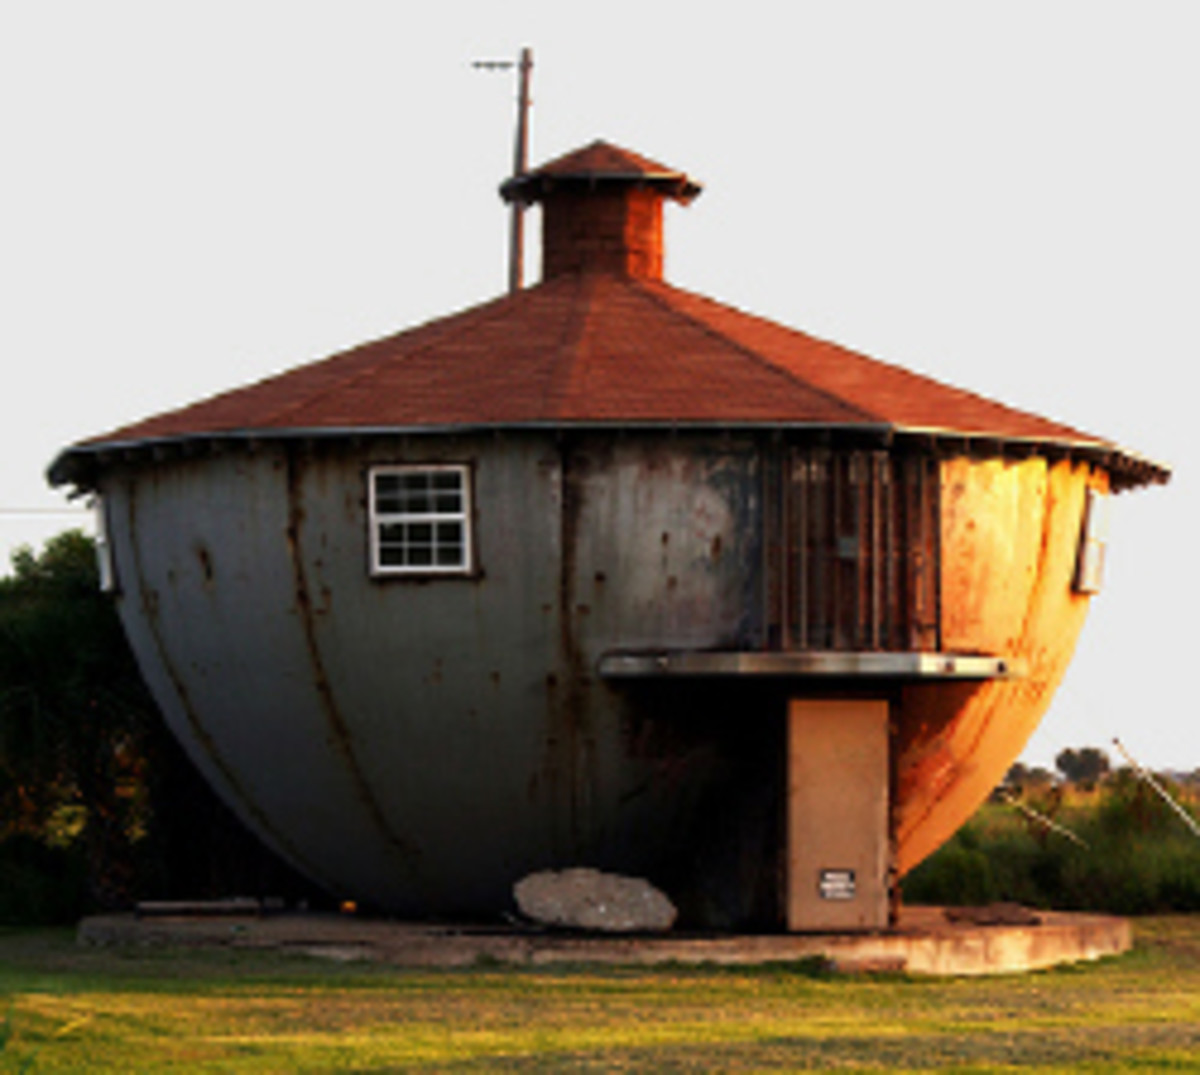 Kettle House in Galveston,Texas